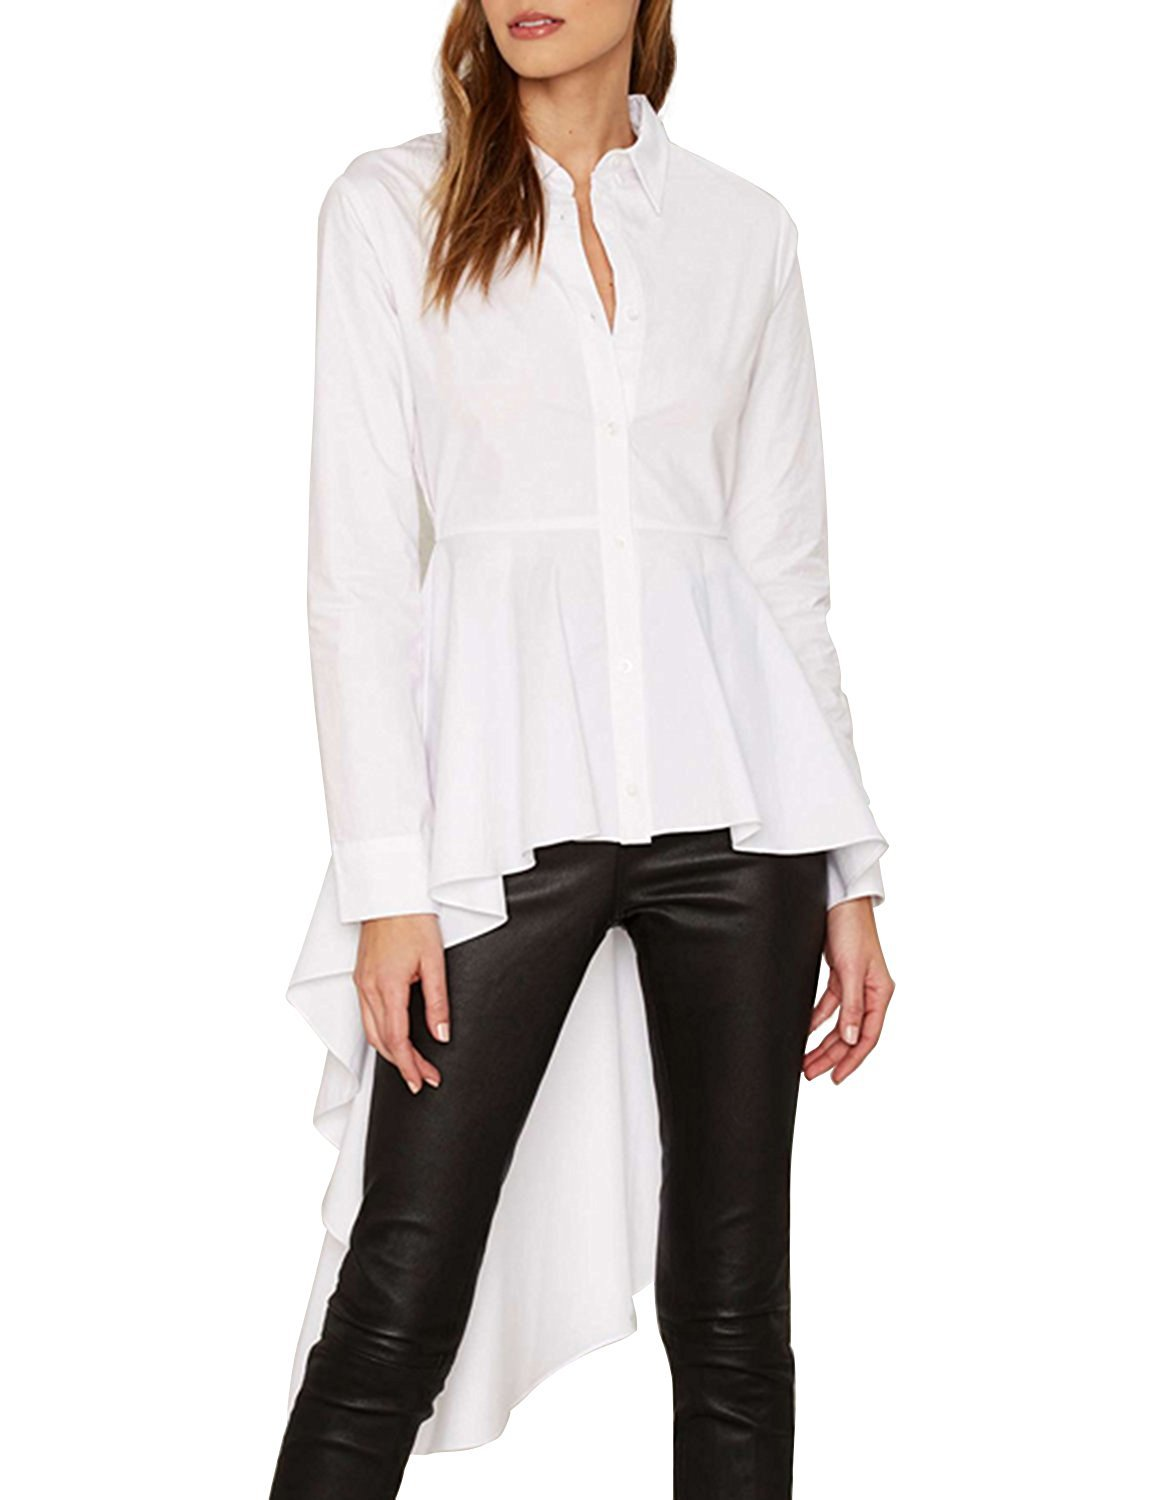 Women's Swallow Tailed High Low Ruffle Blouse Shirt.